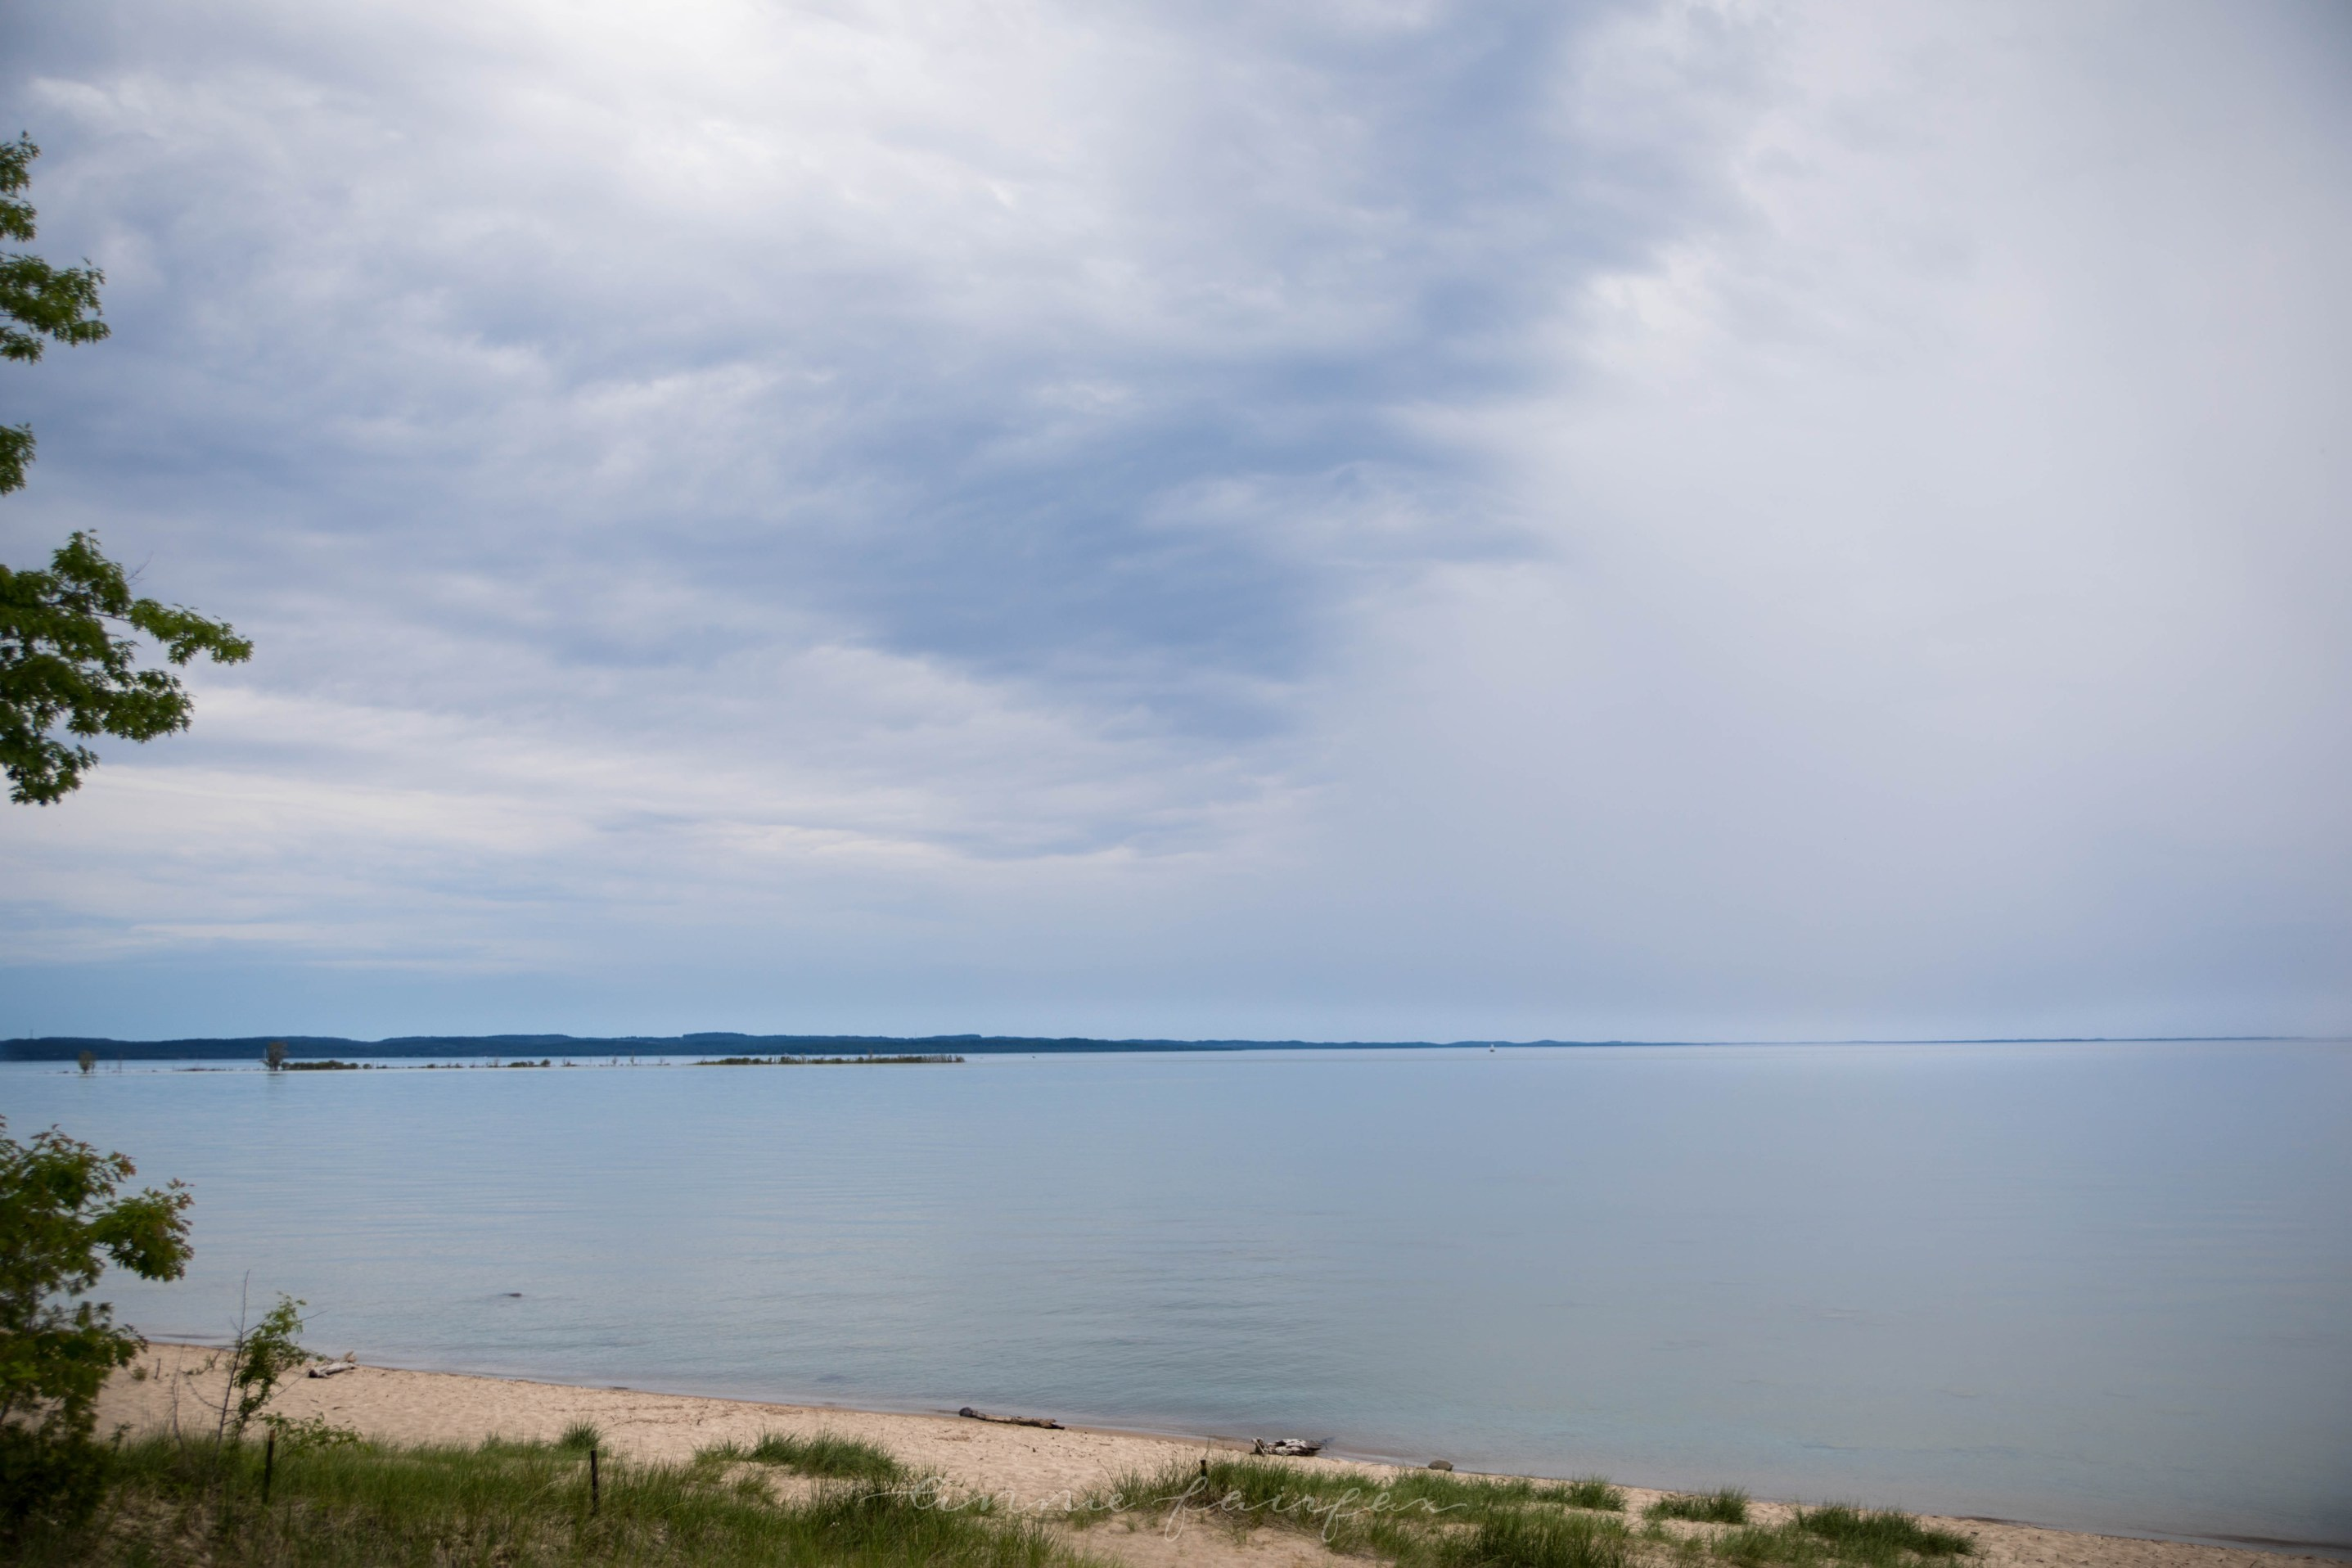 The Complete Traveler's Guide to Traverse City, MI Where to Eat, Where to Stay, What to Do, Day Trips and More